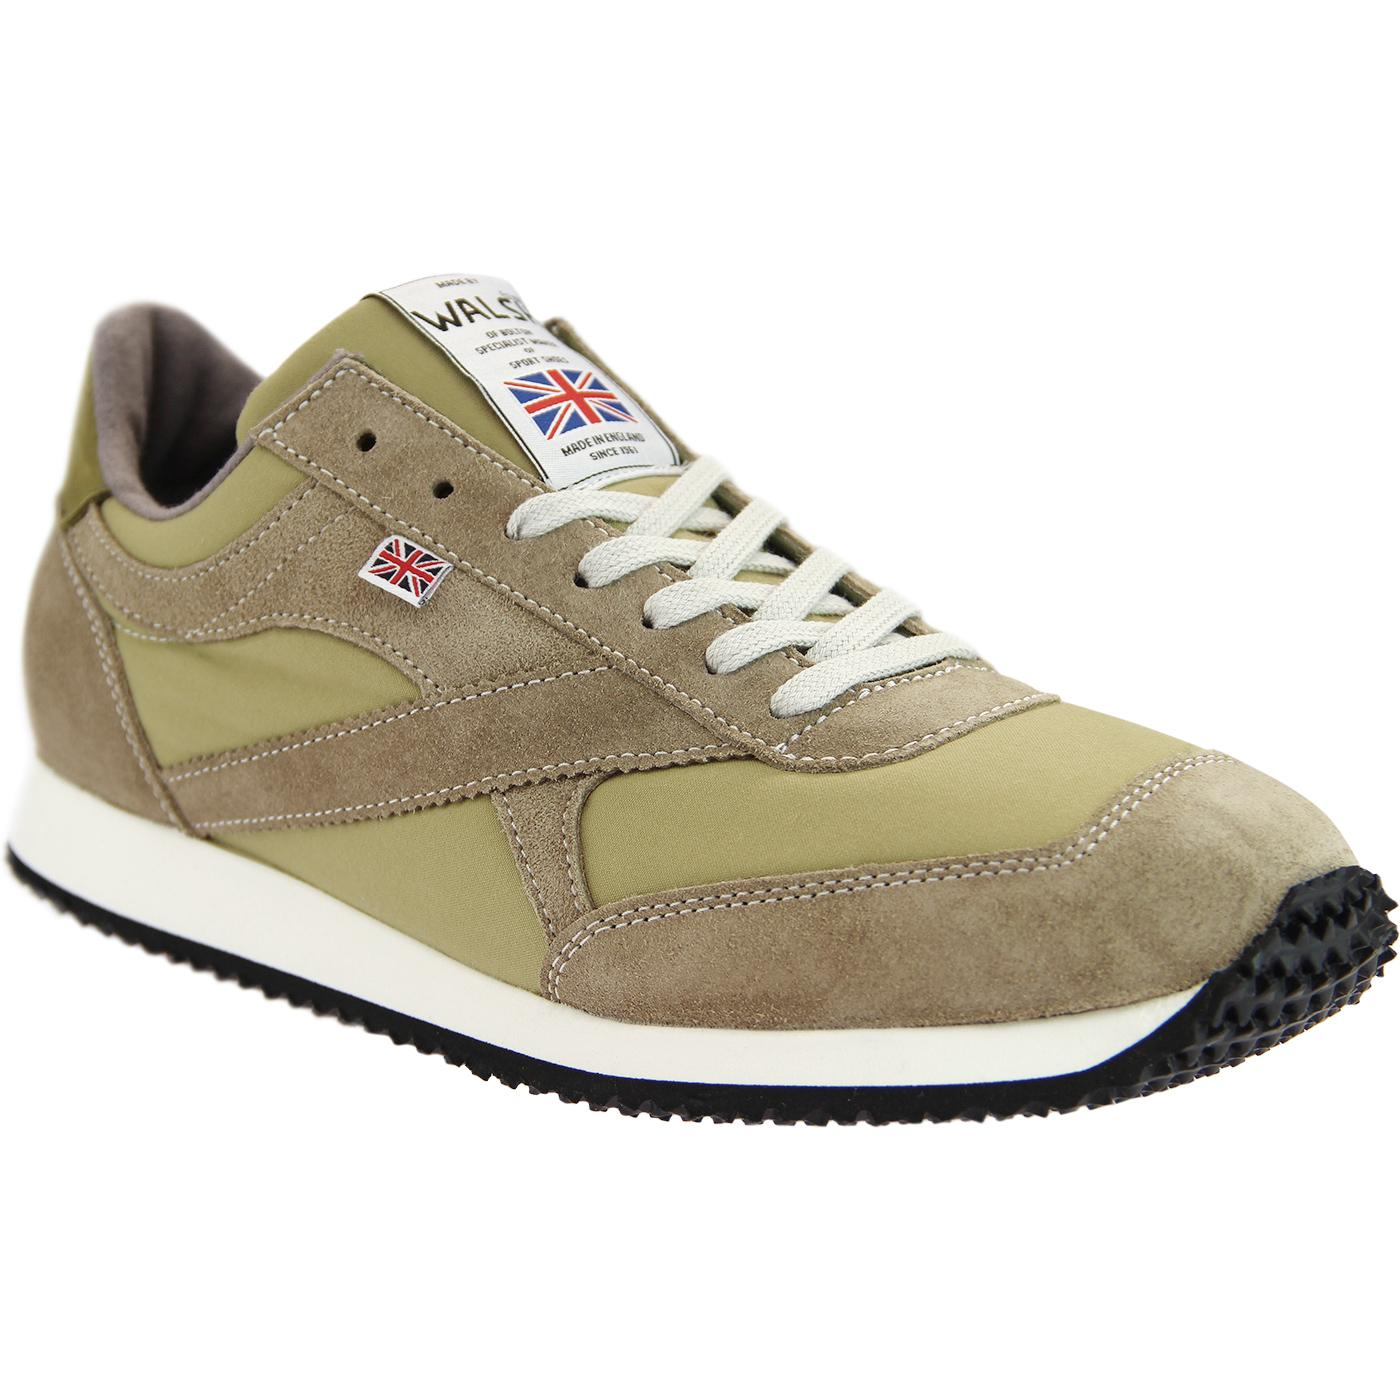 Tornado WALSH Made in England Retro Trainers GT